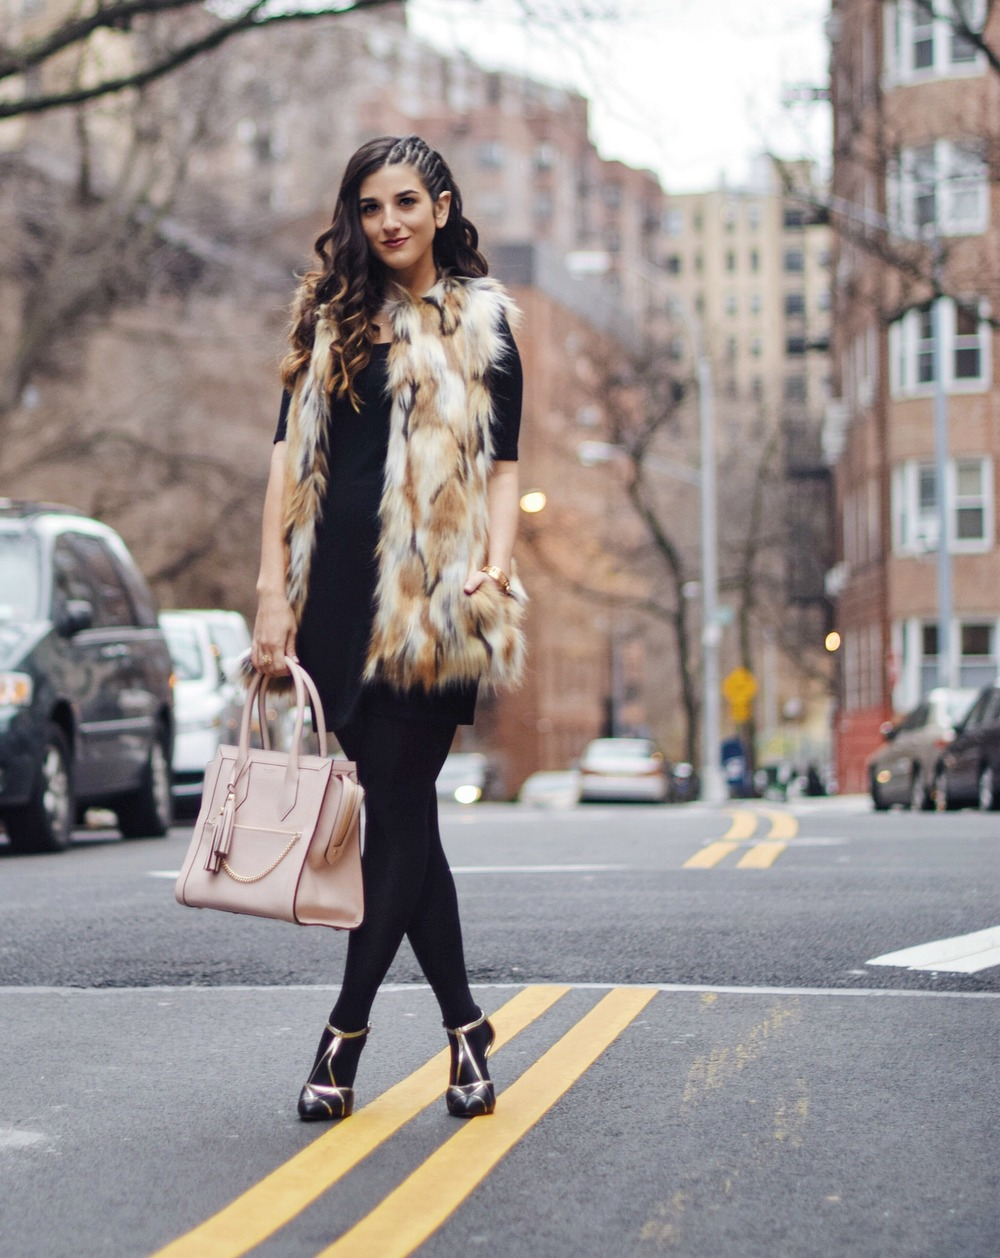 Calico Fur Henri Bendel Structured Leather Bag Louboutins & Love Fashion Blog Esther Santer NYC Street Style Blogger Zara Gold Jewelry Bracelet Pink Purse Vest Hair Inspo Outfit OOTD Cornrows LBD Black Dress Shoes Heels Women Girl Winter Fall Shopping.jpg